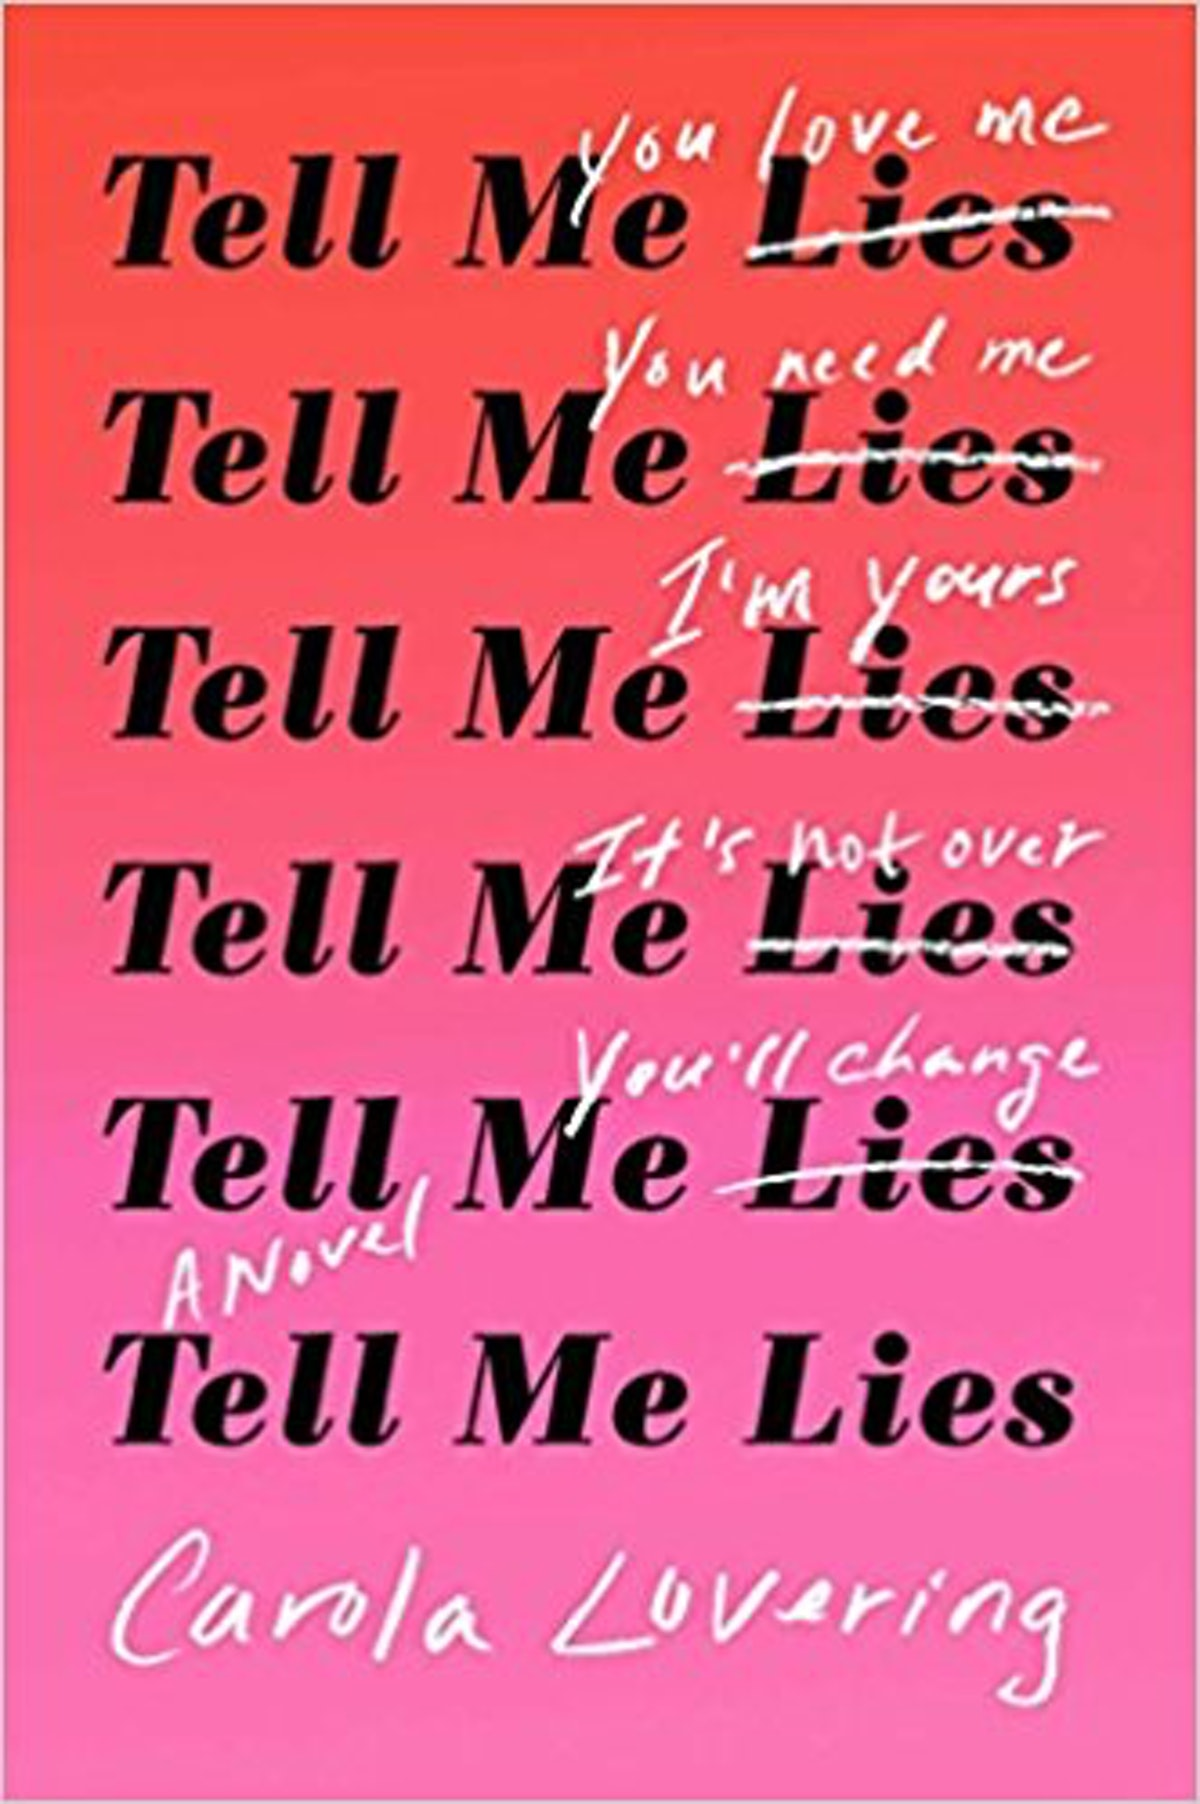 'Tell Me Lies' by Carola Lovering